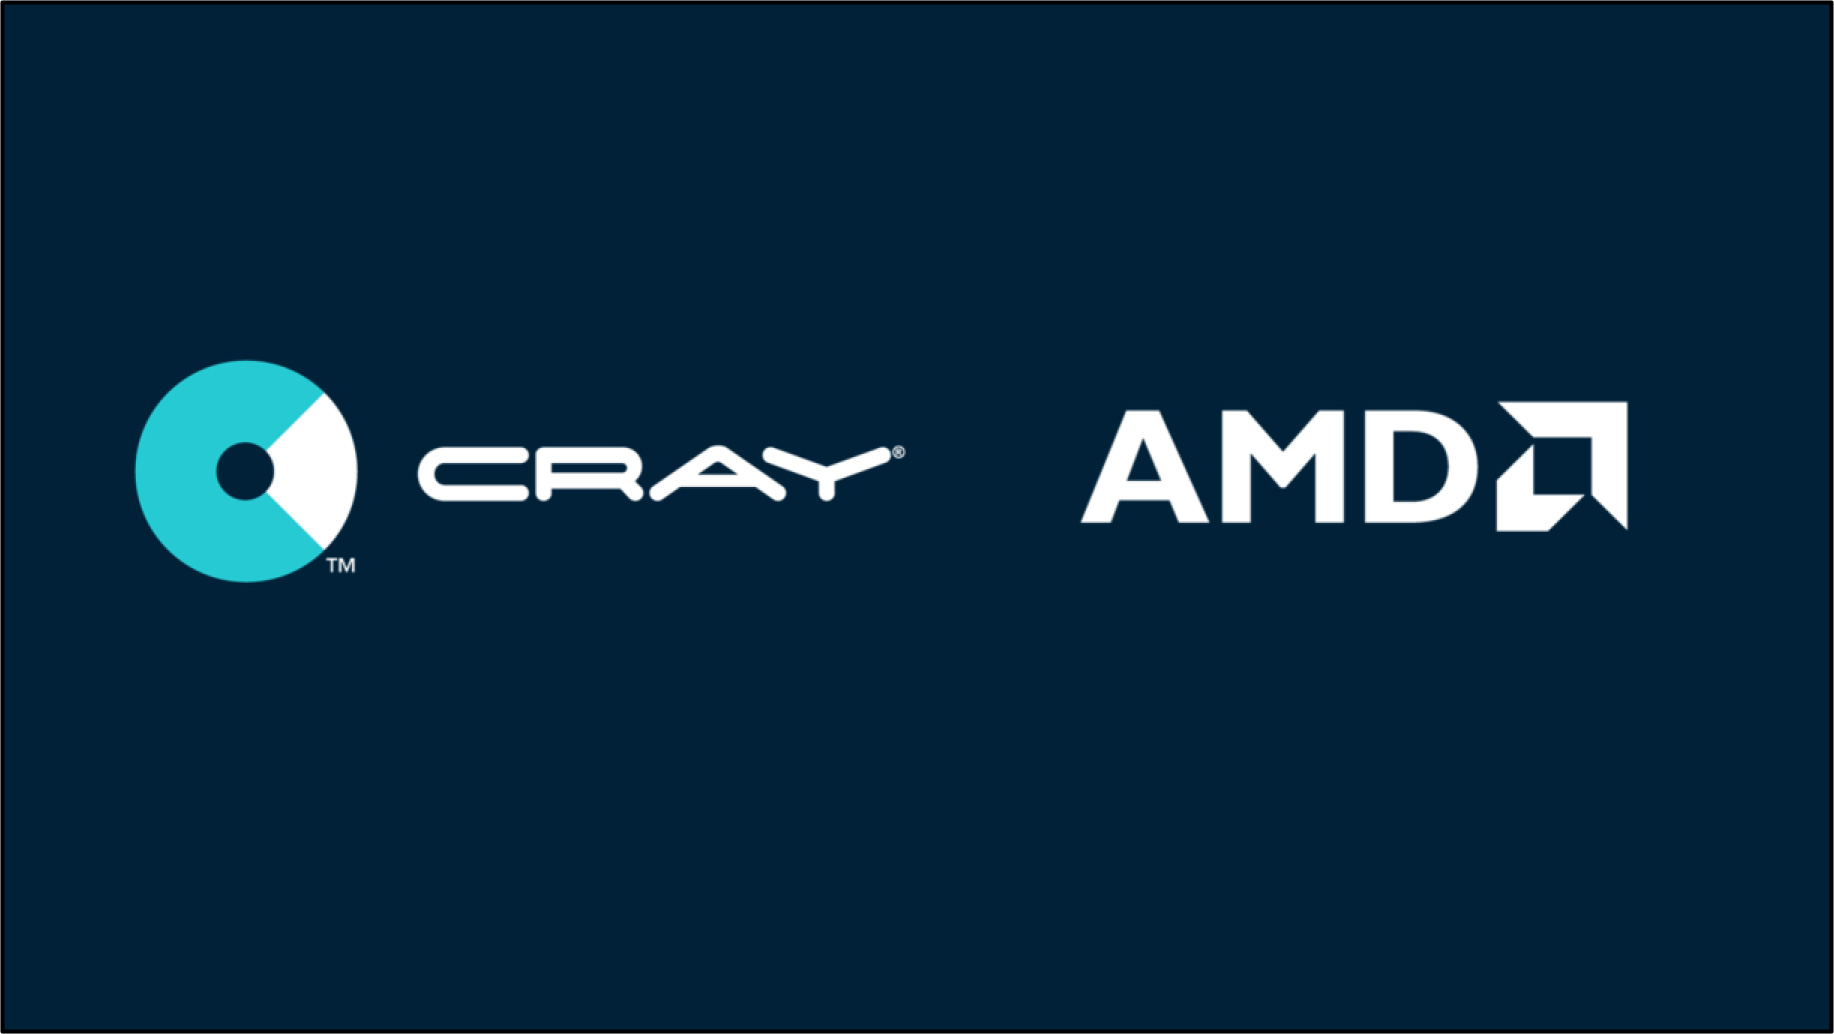 AMD and Cray are building the world's fastest supercomputer